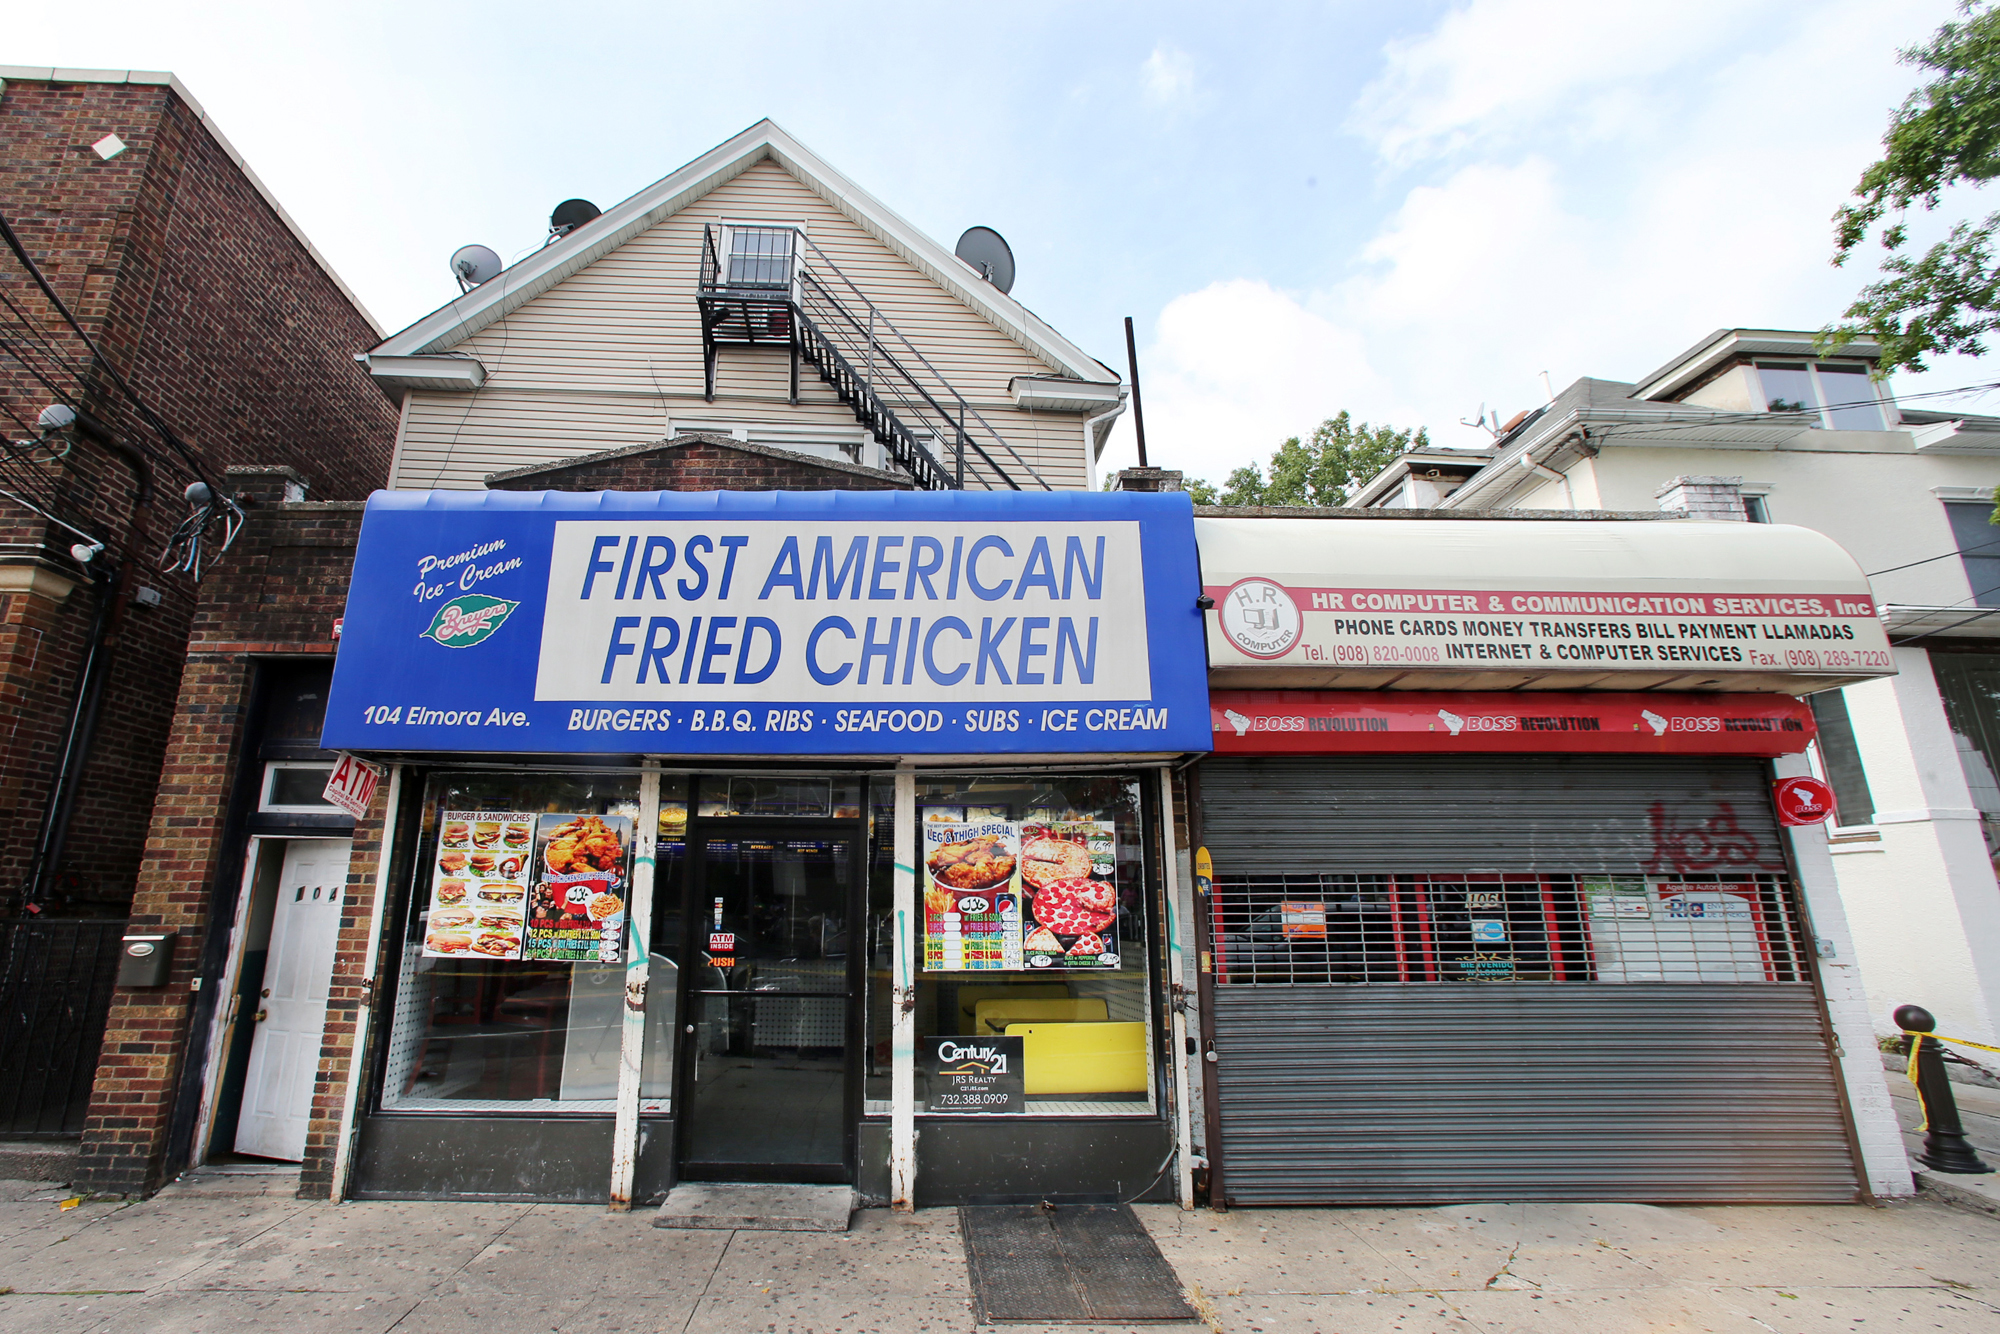 The First American Fried Chicken restaurant in Elizabeth, N.J. The restaurant saw its Yelp reviews plummet after the owner's son, Ahmad Khan Rahami, was arrested as a suspect in this month's bombings in New York and New Jersey.